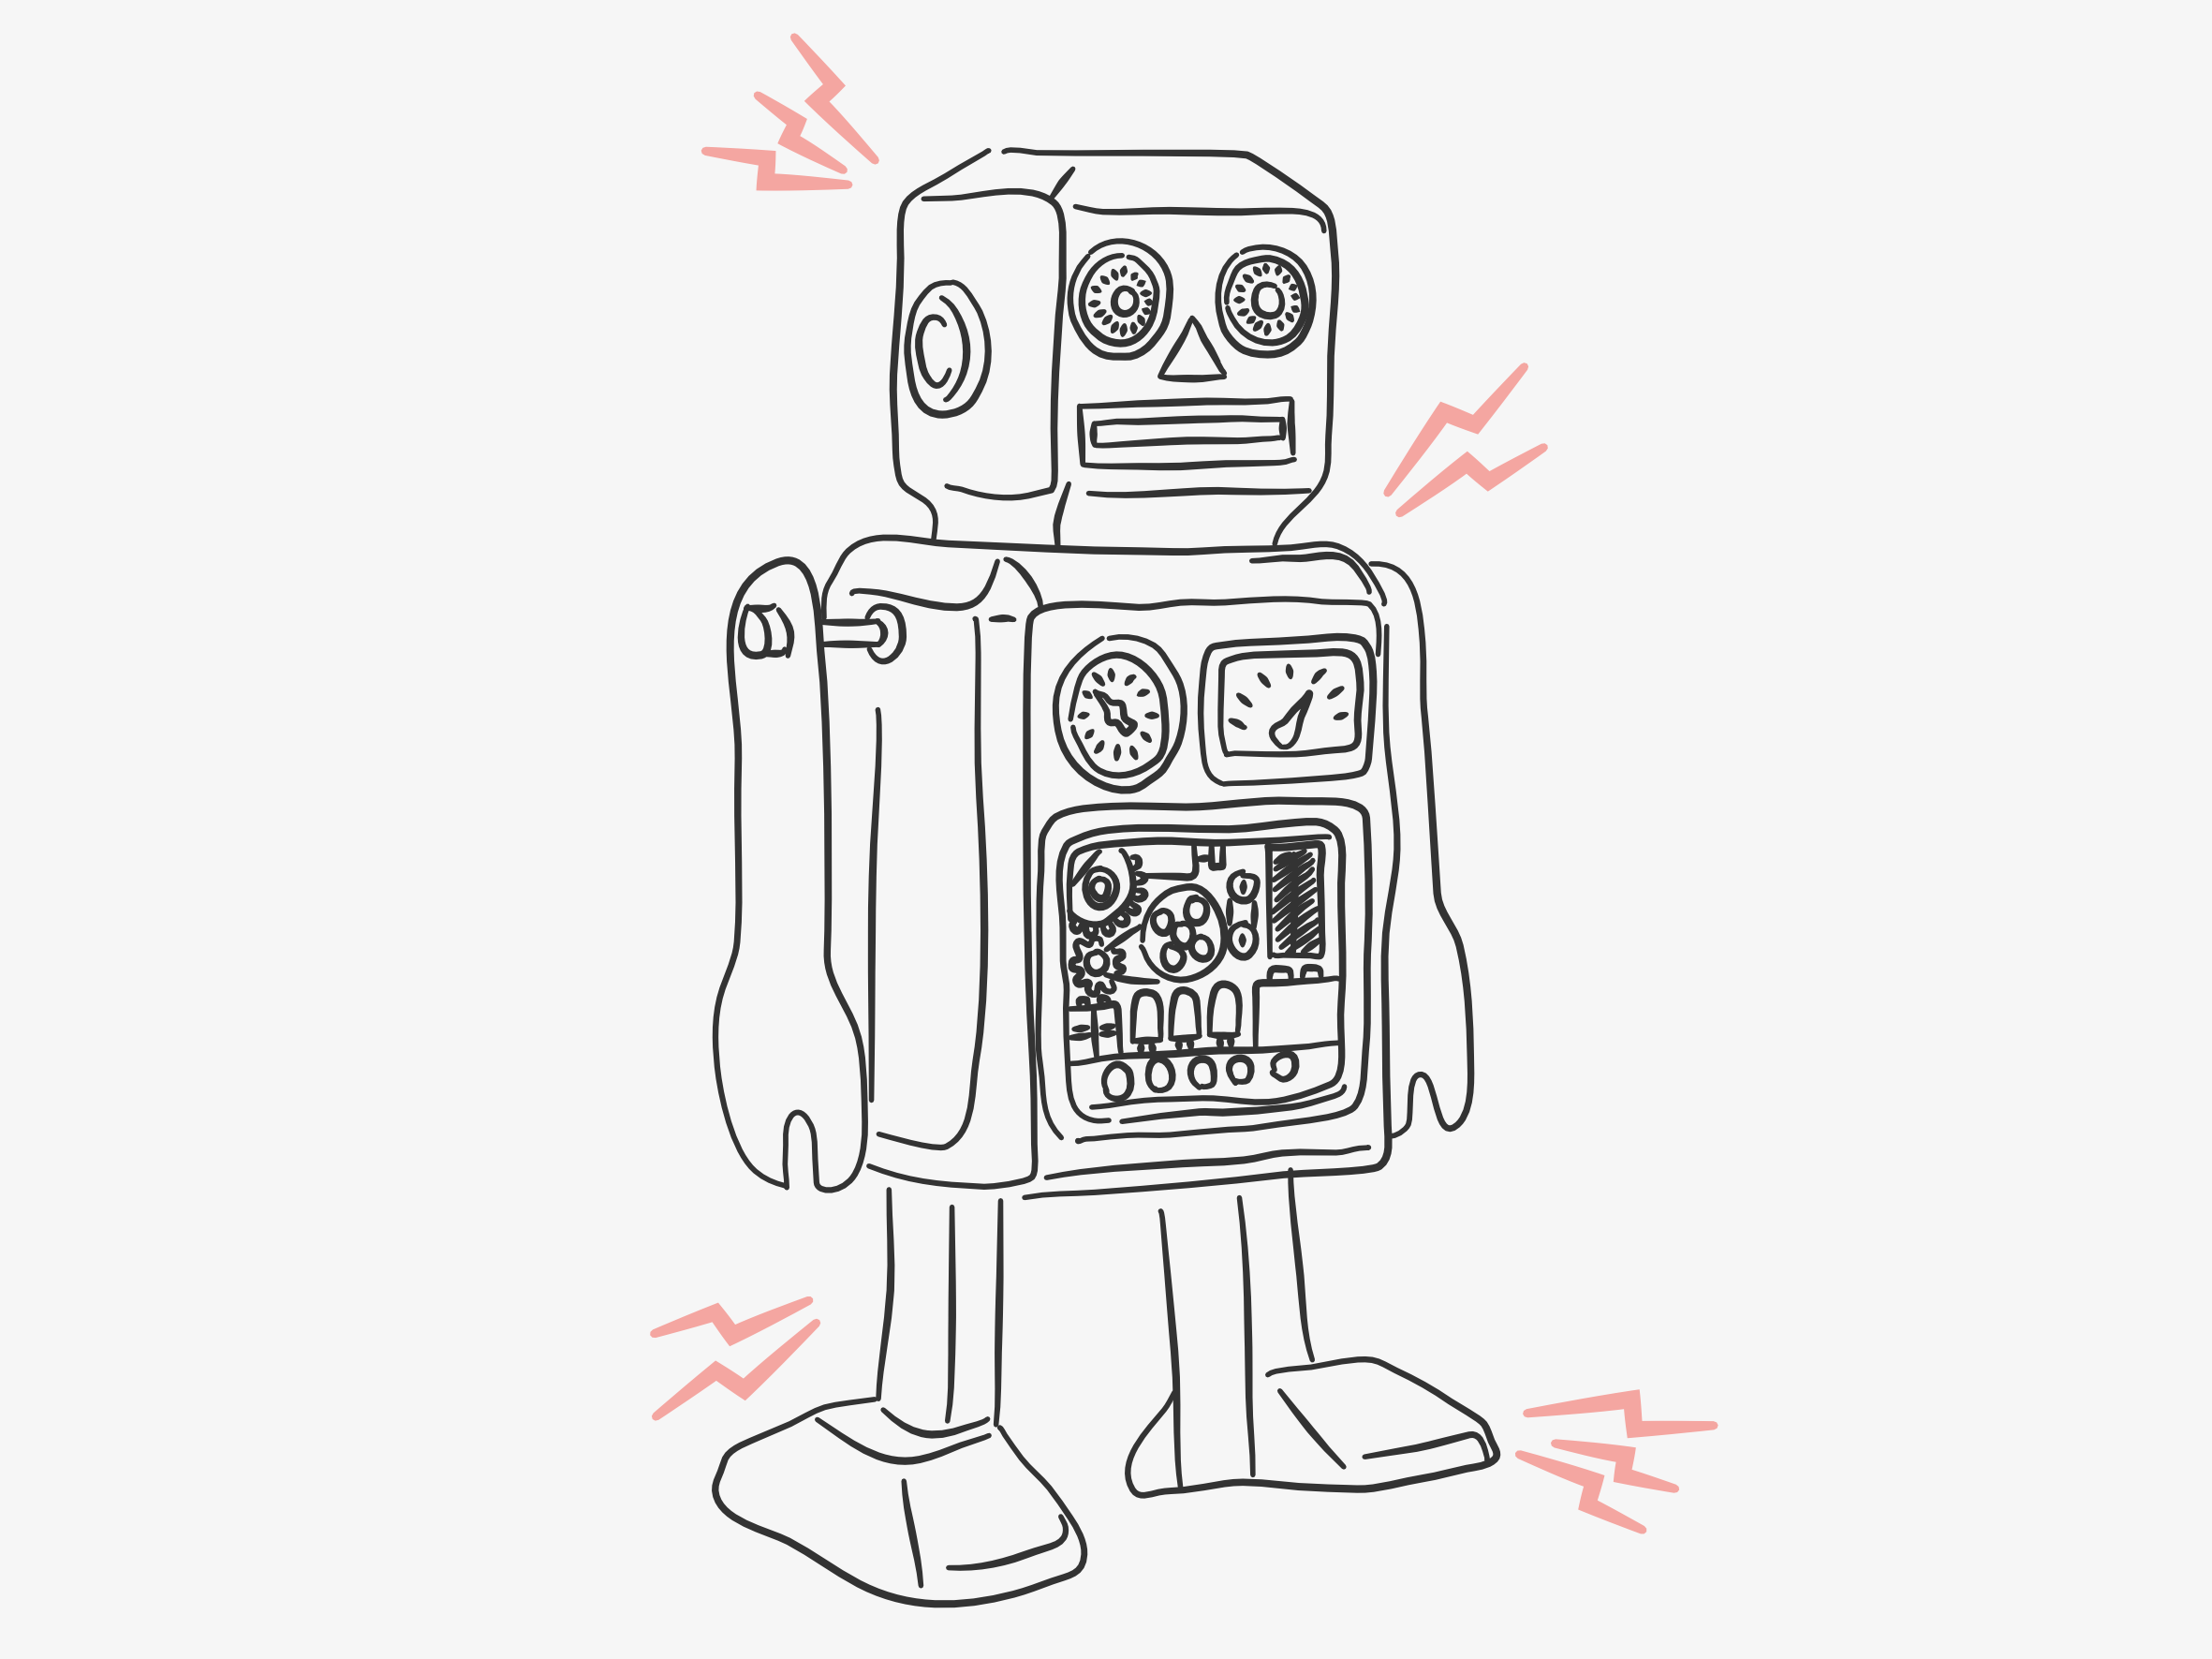 7 Things All Creatives Should Automate robot illustration